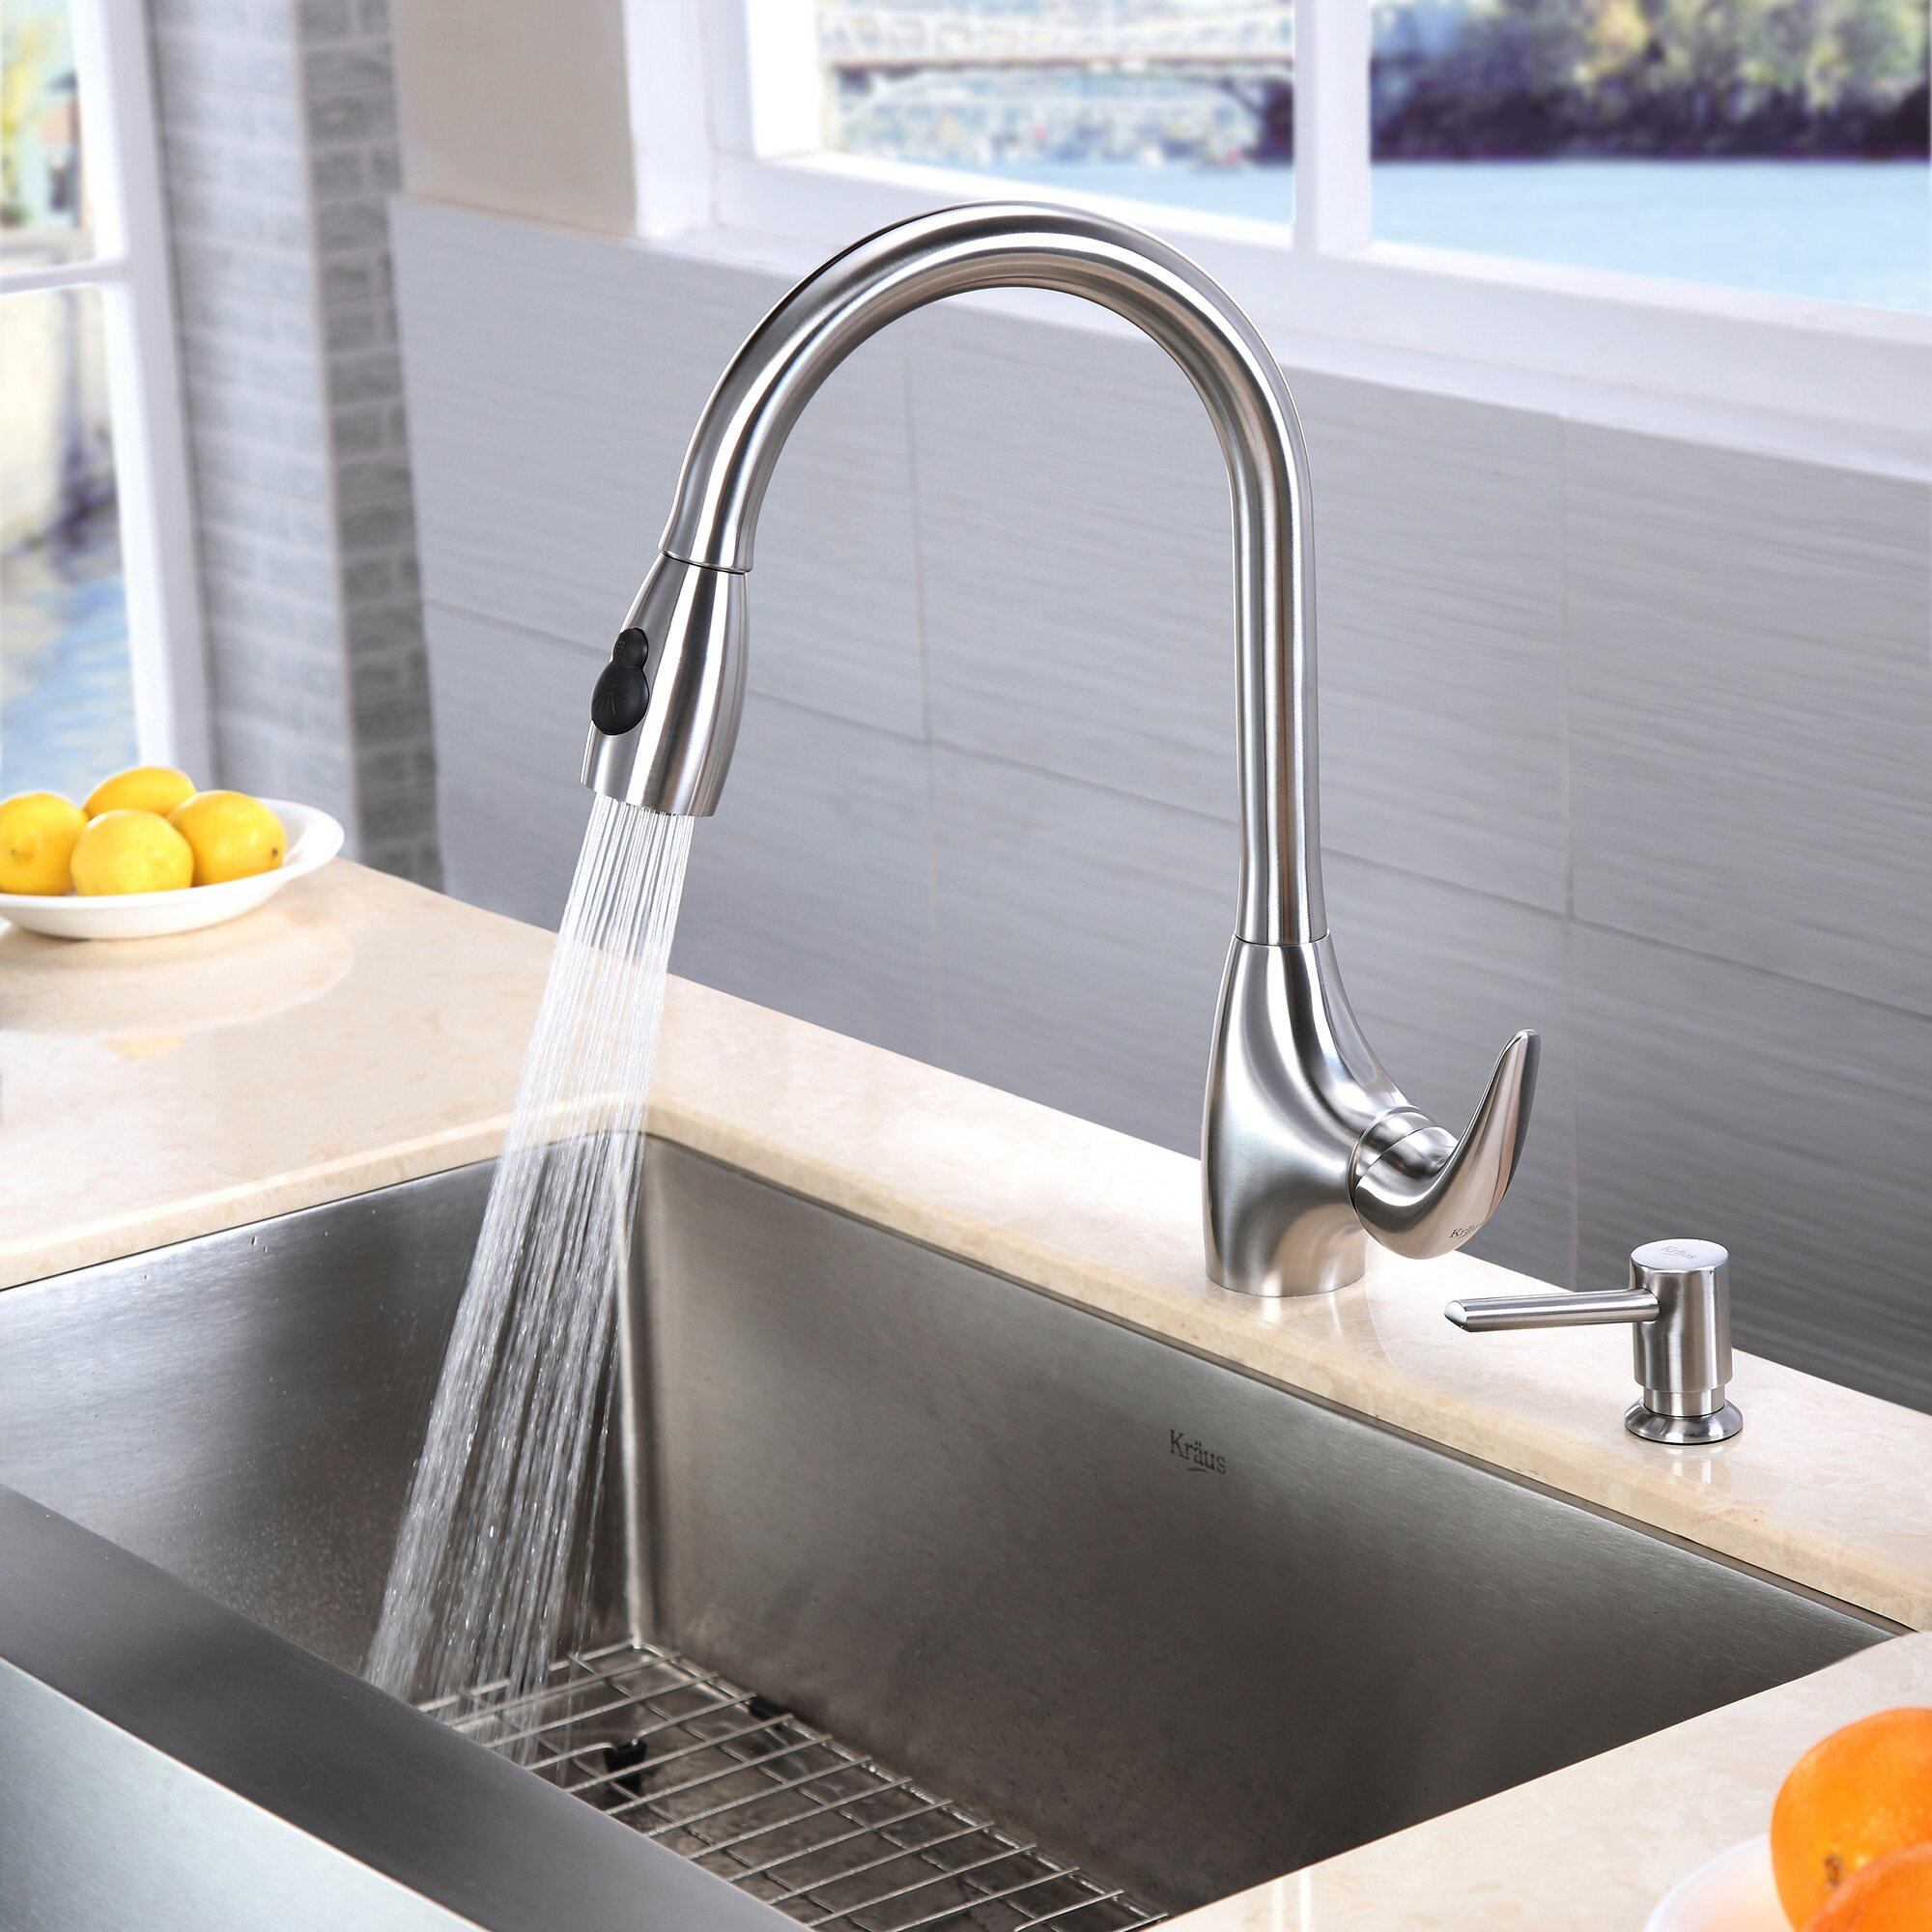 "Kitchen Sink Kraus: Kraus Farmhouse 33"" X 20.75"" Kitchen Sink & Reviews"